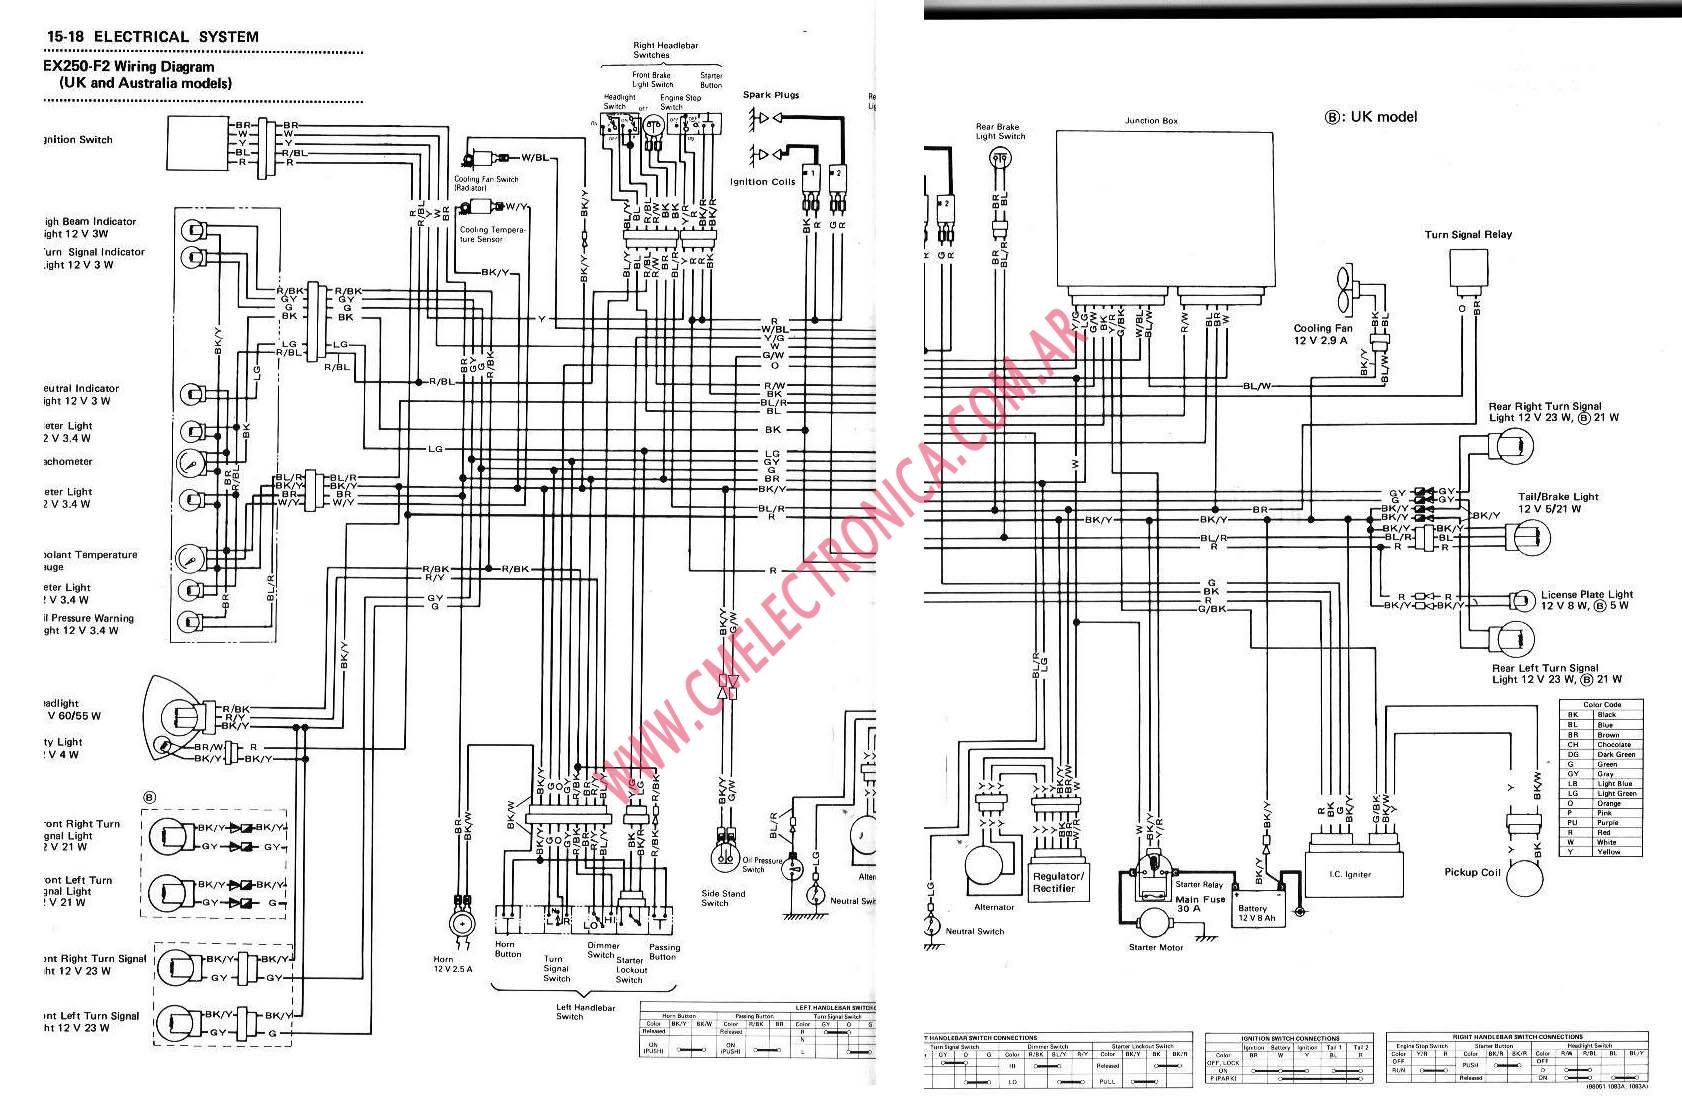 kawasaki s1 wiring diagram kawasaki wiring diagrams online 1999 kawasaki ex250 wiring diagram 1999 wiring diagrams online description bayou 250